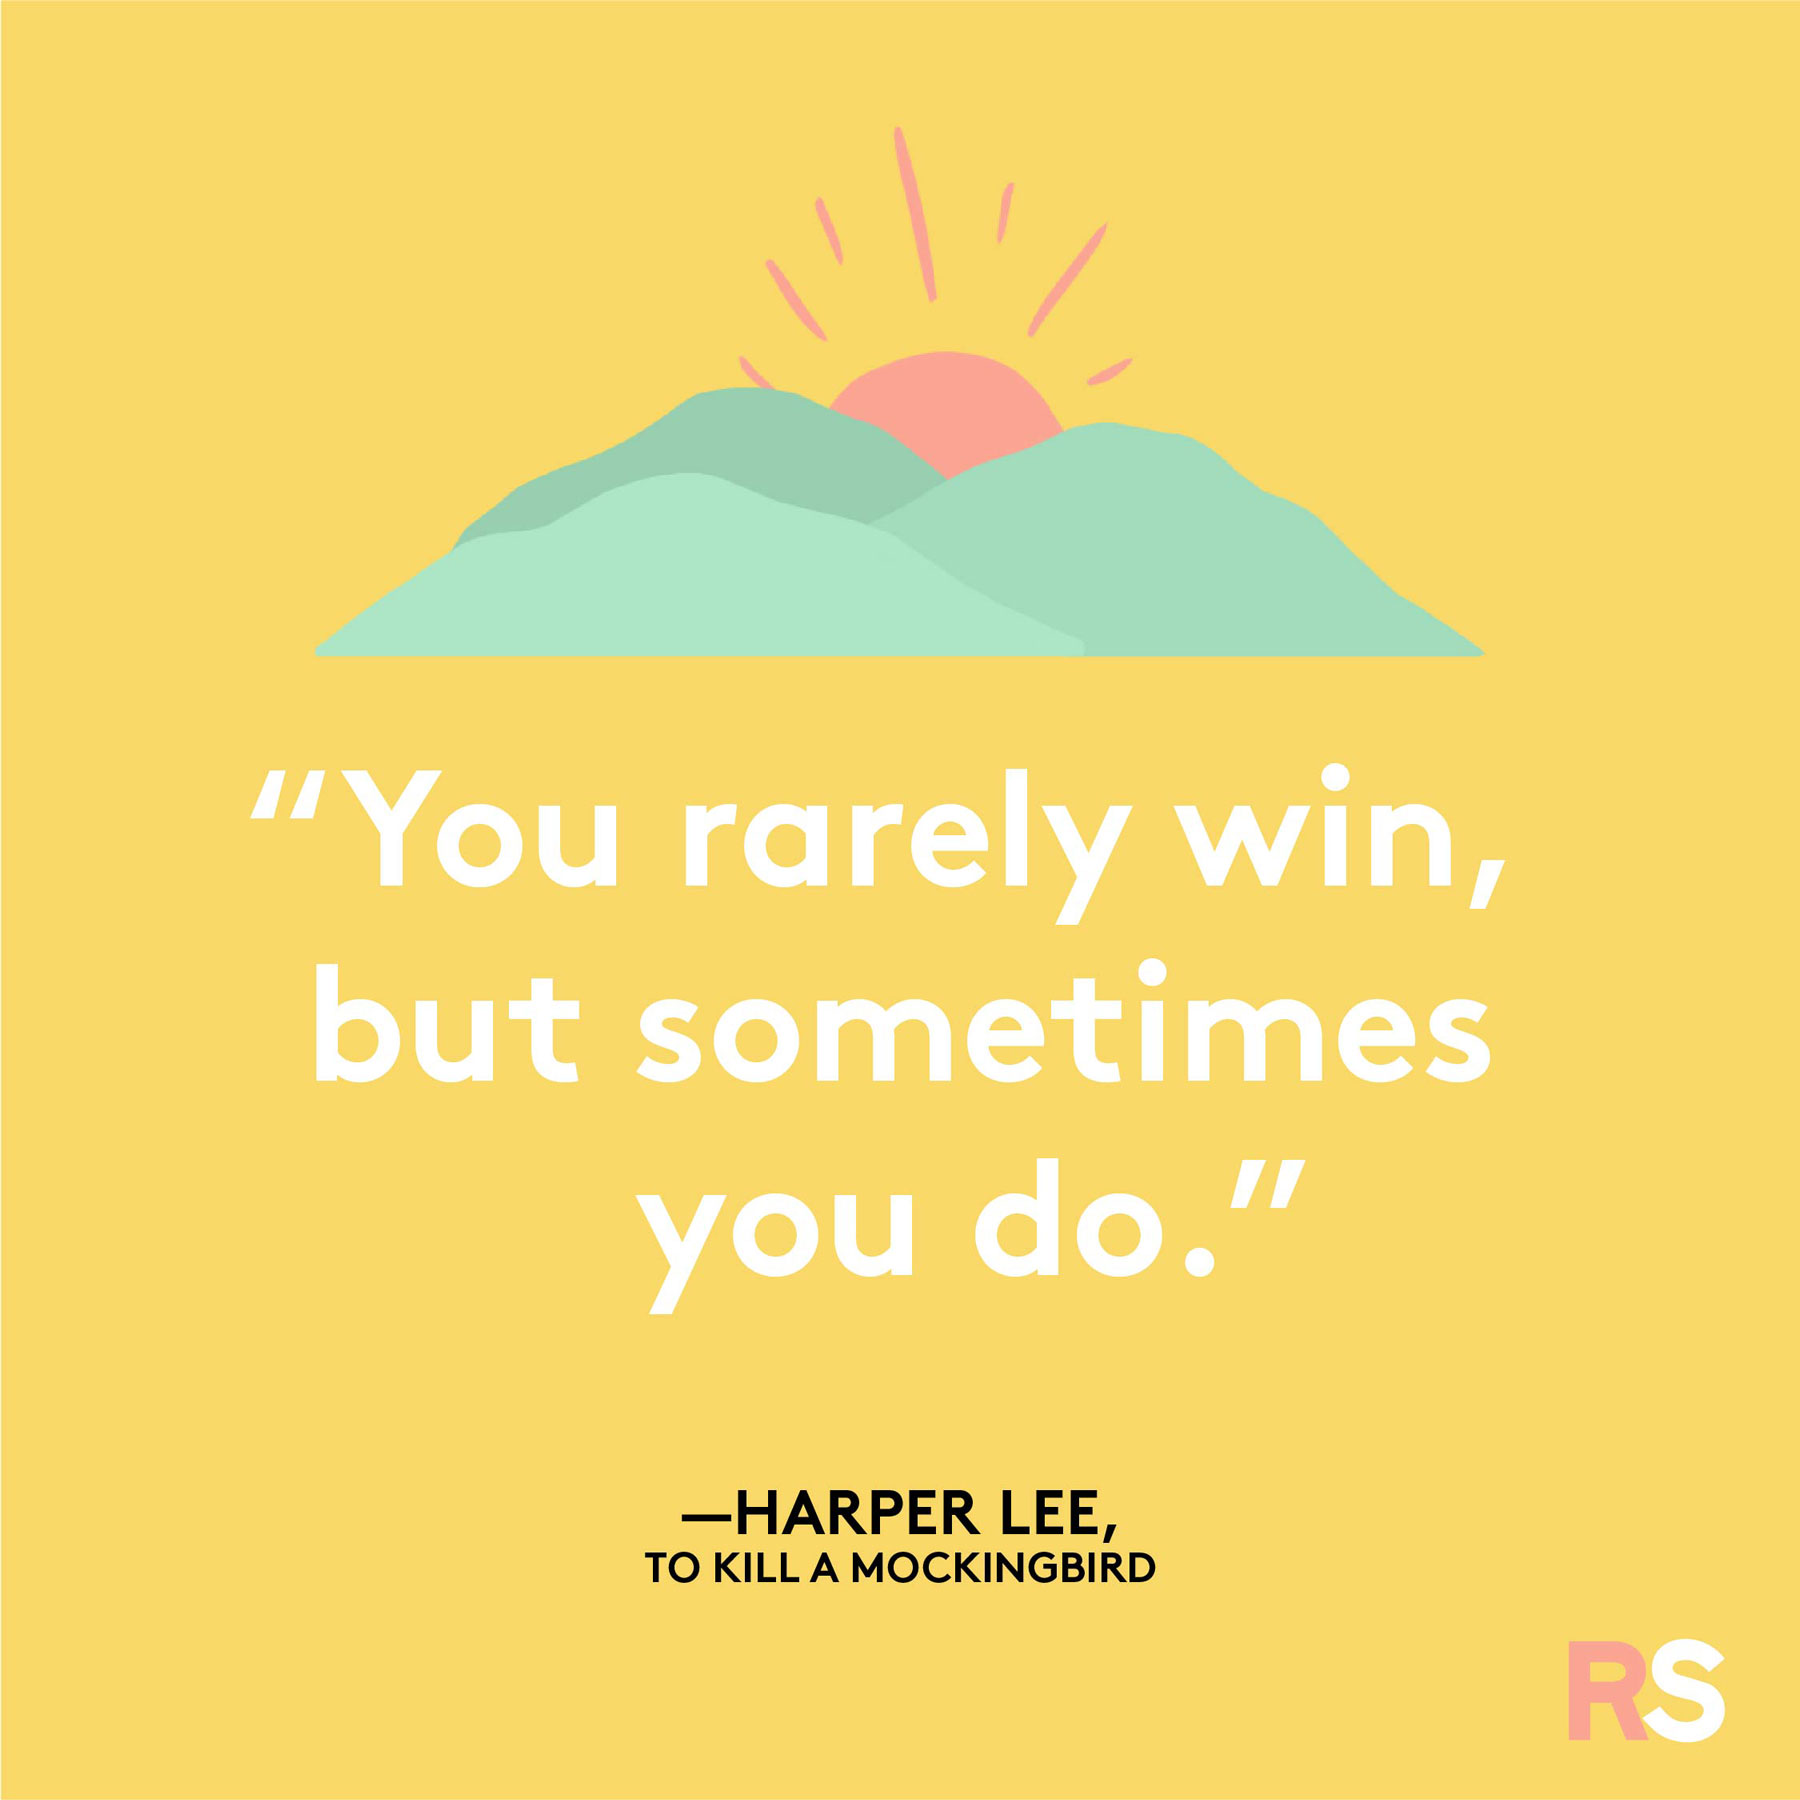 Positive motivating quotes, captions, messages – Harper Lee, To Kill a Mockingbird quote